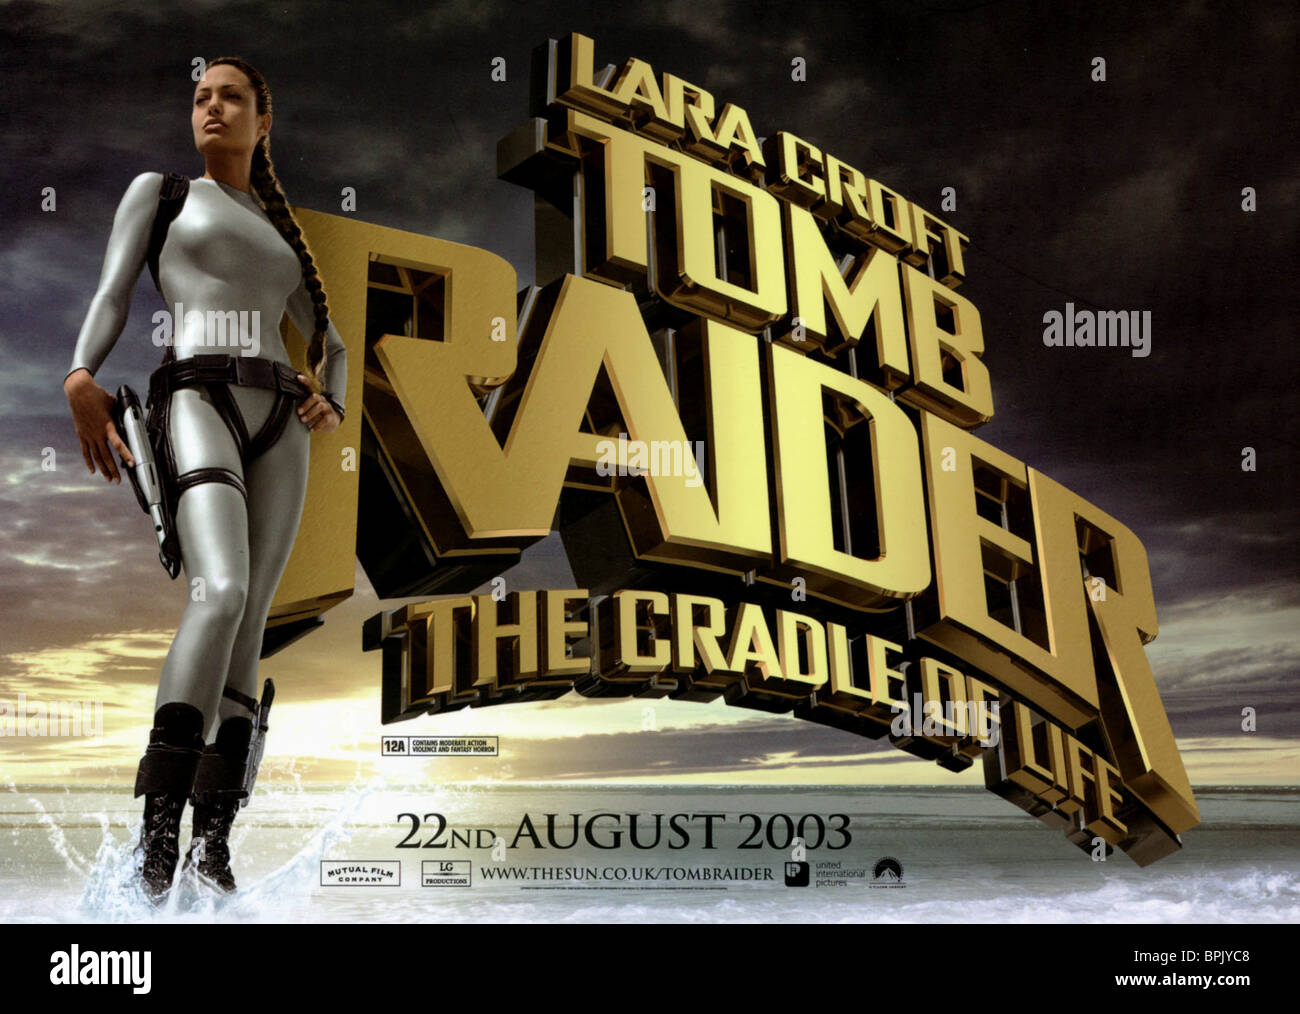 Angelina Jolie Poster Lara Croft Tomb Raider 2 The Cradle Of Life